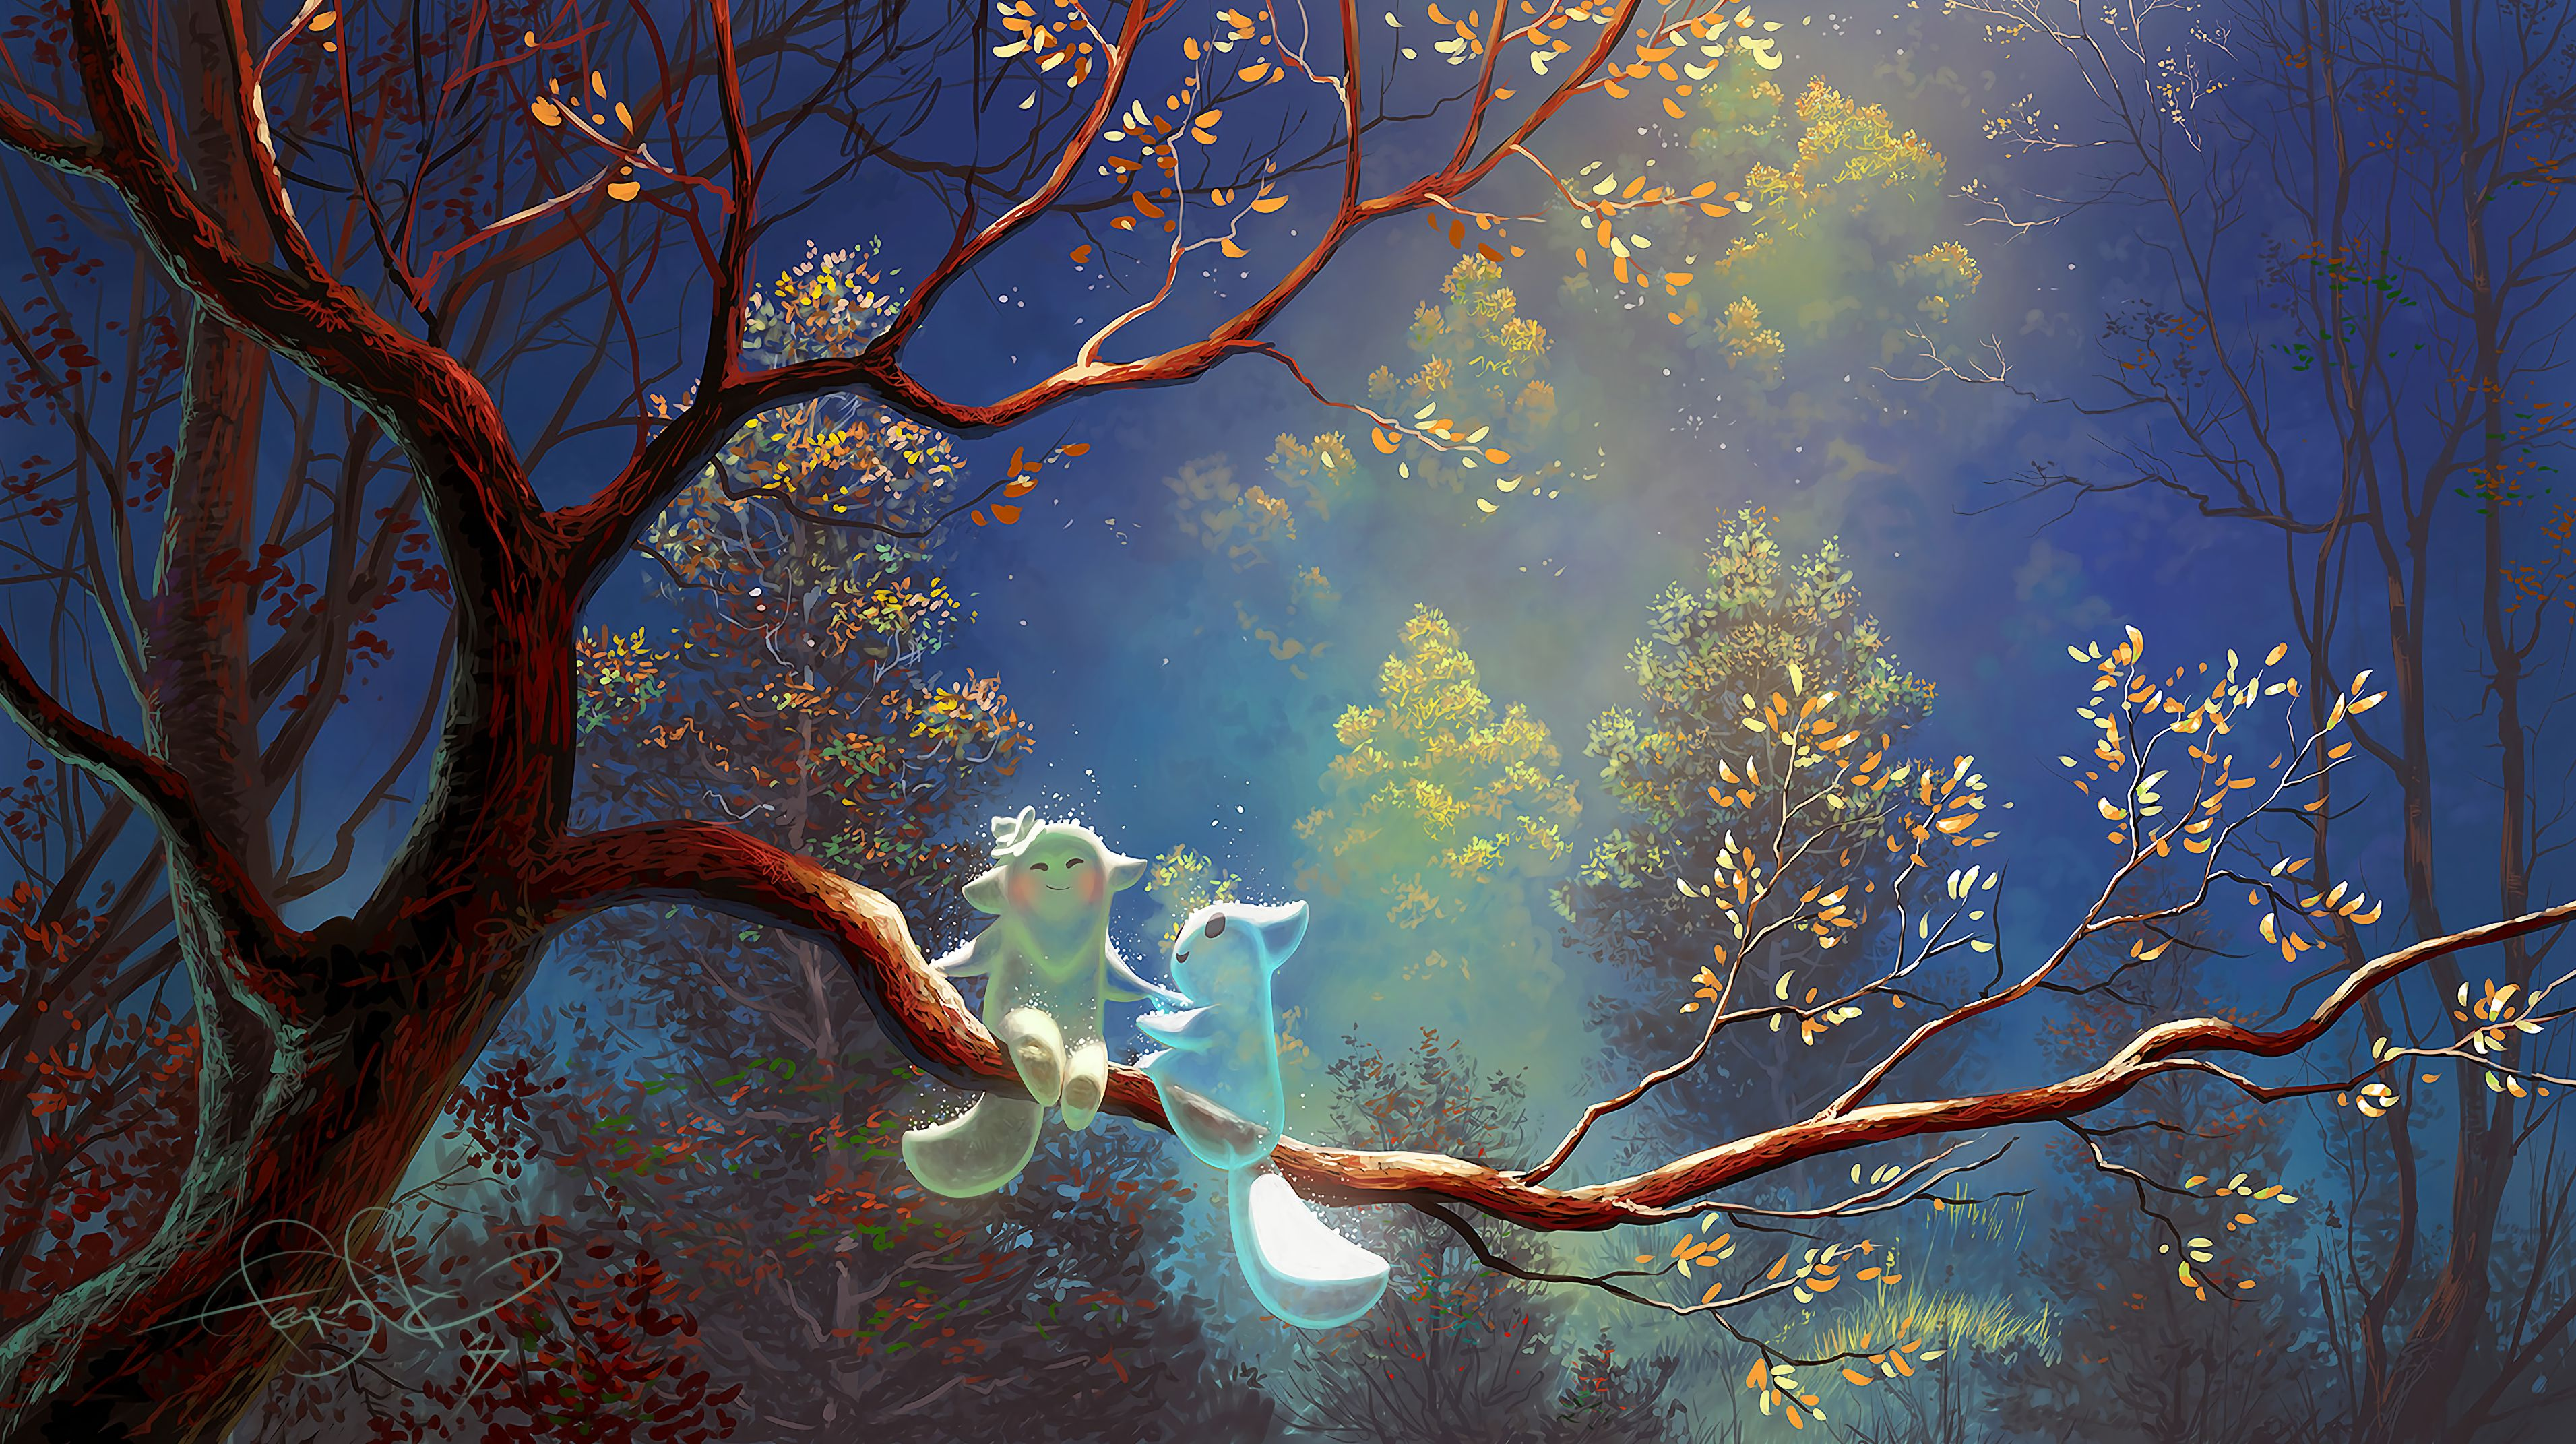 110964 download wallpaper Beasts, Wood, Tree, Branch, Magic, Art, Fantasy screensavers and pictures for free